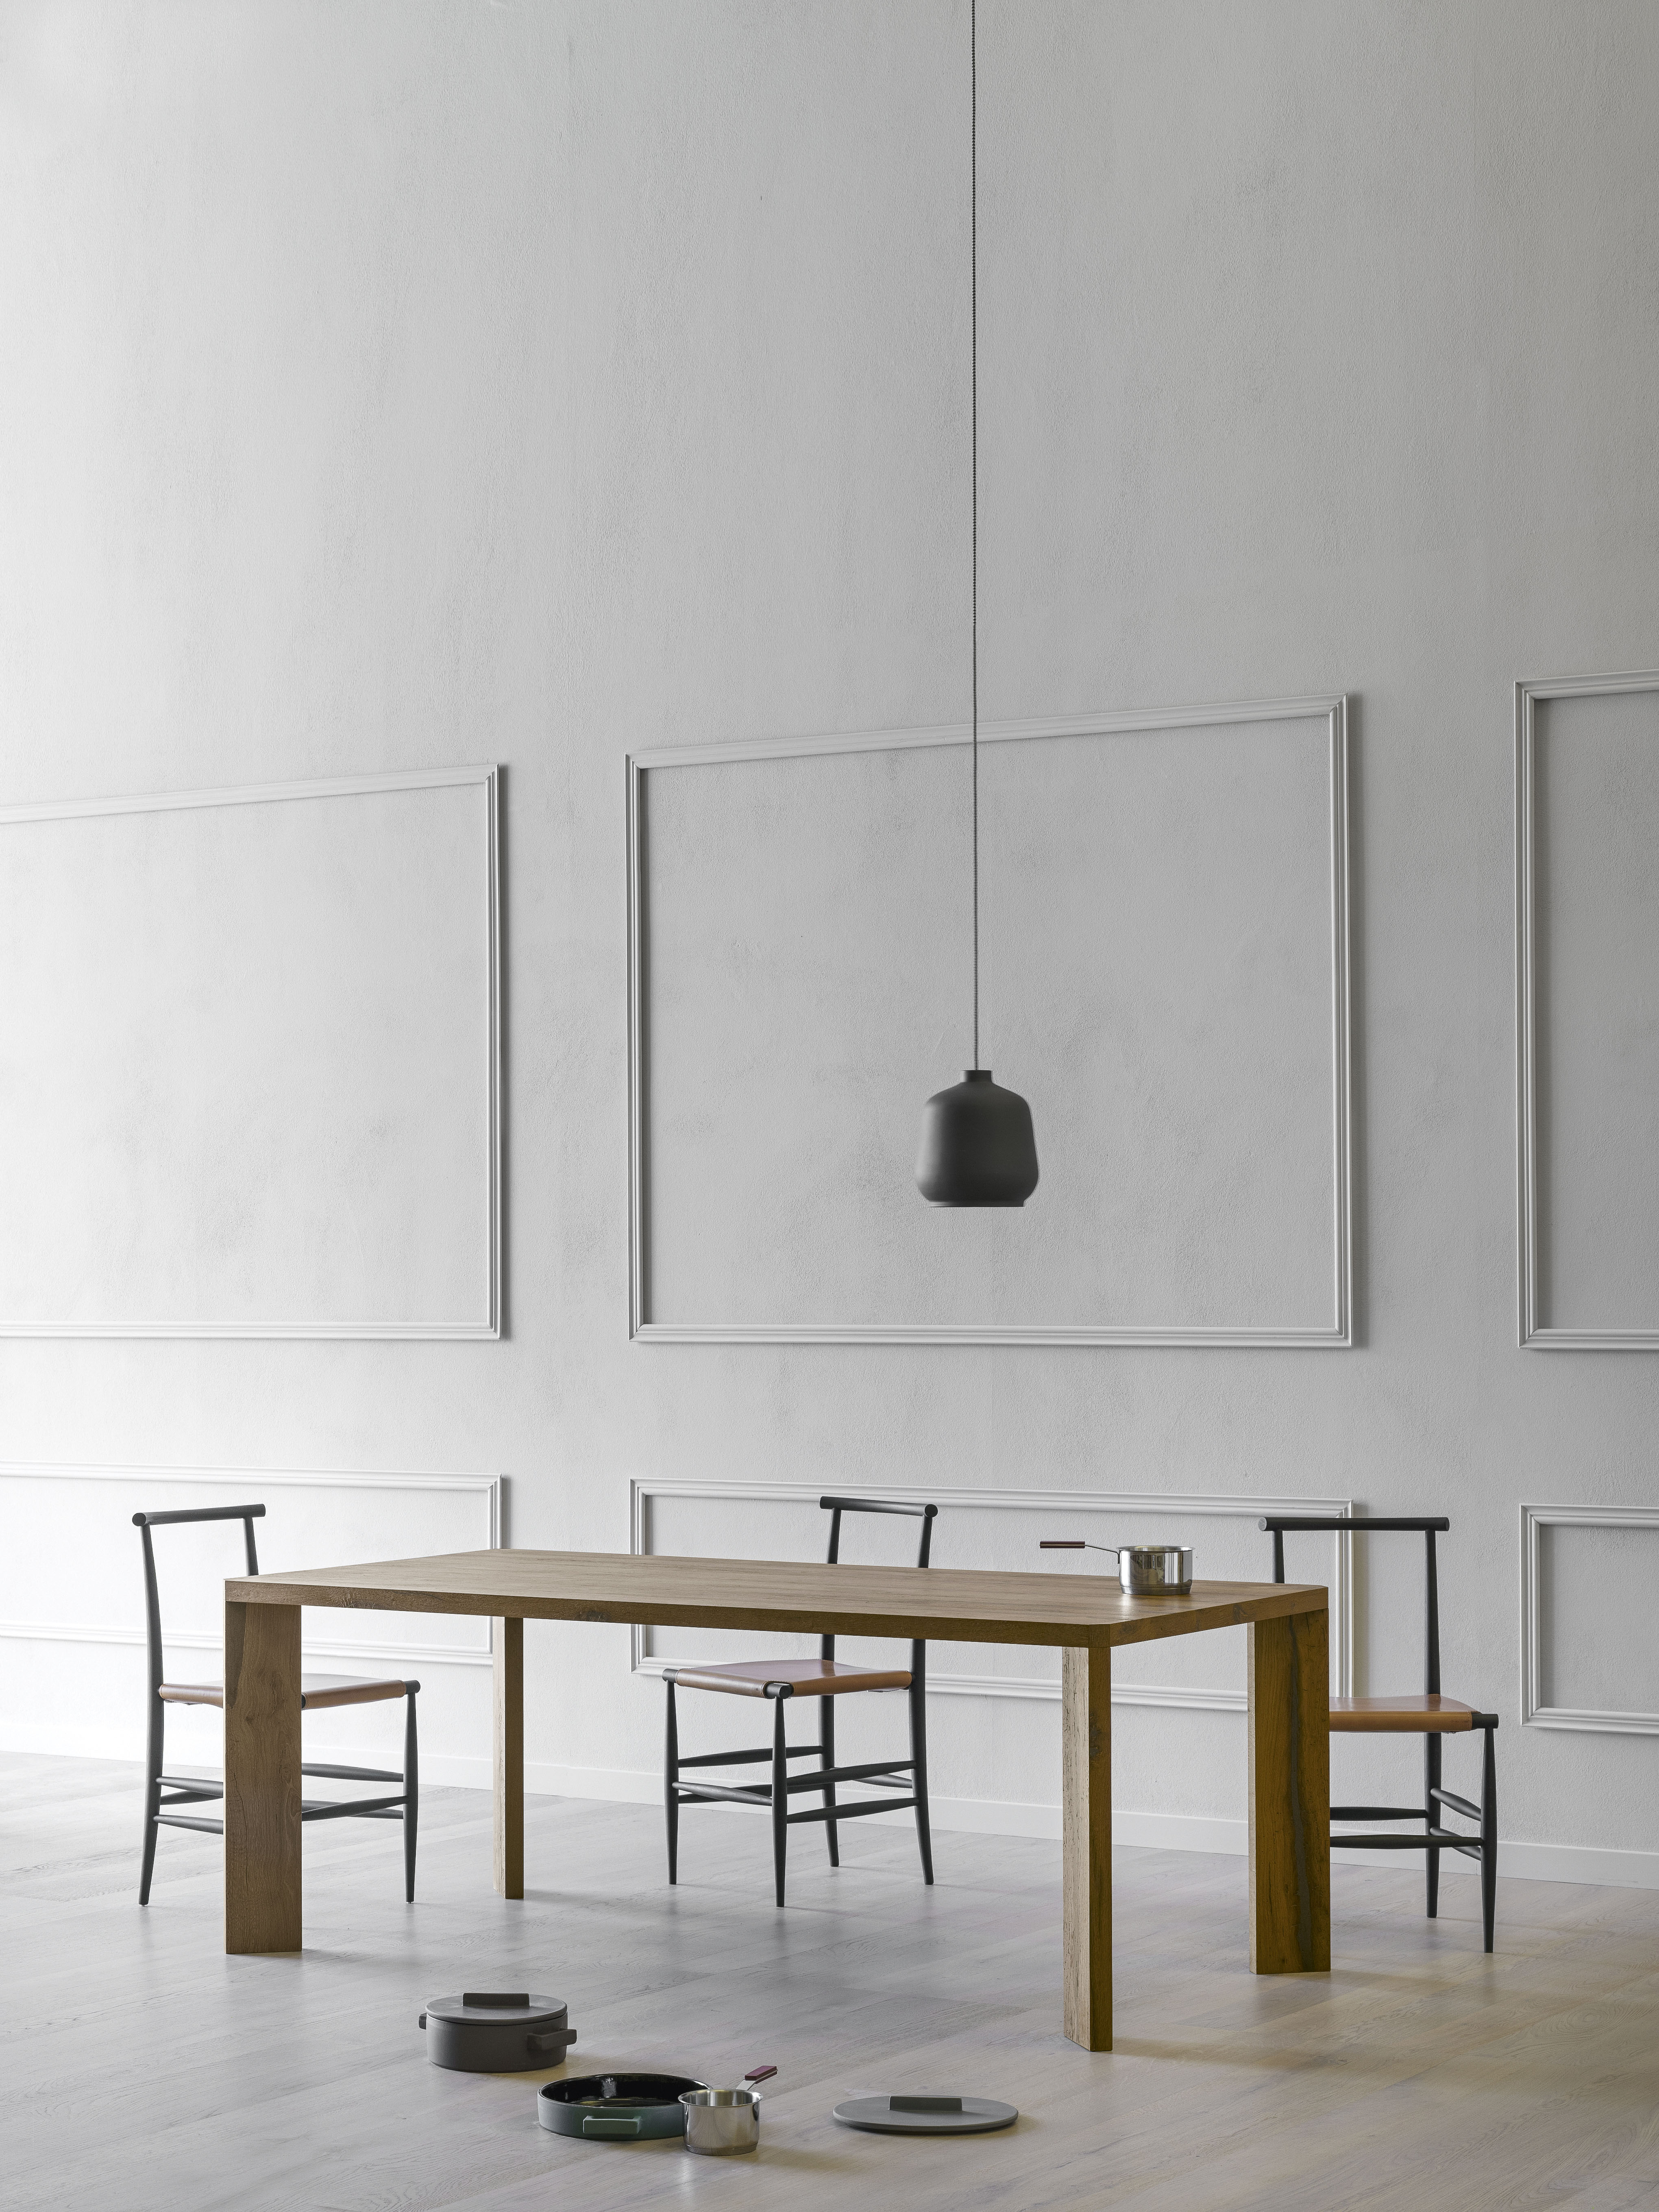 Manero Dining Table - Manero is a contemporary looking table yet has a strong association with traditional fine quality joinery. Its primitive character focuses our attention on the expressive nature of the wood. An assertive table with no frills.  | Matter of Stuff